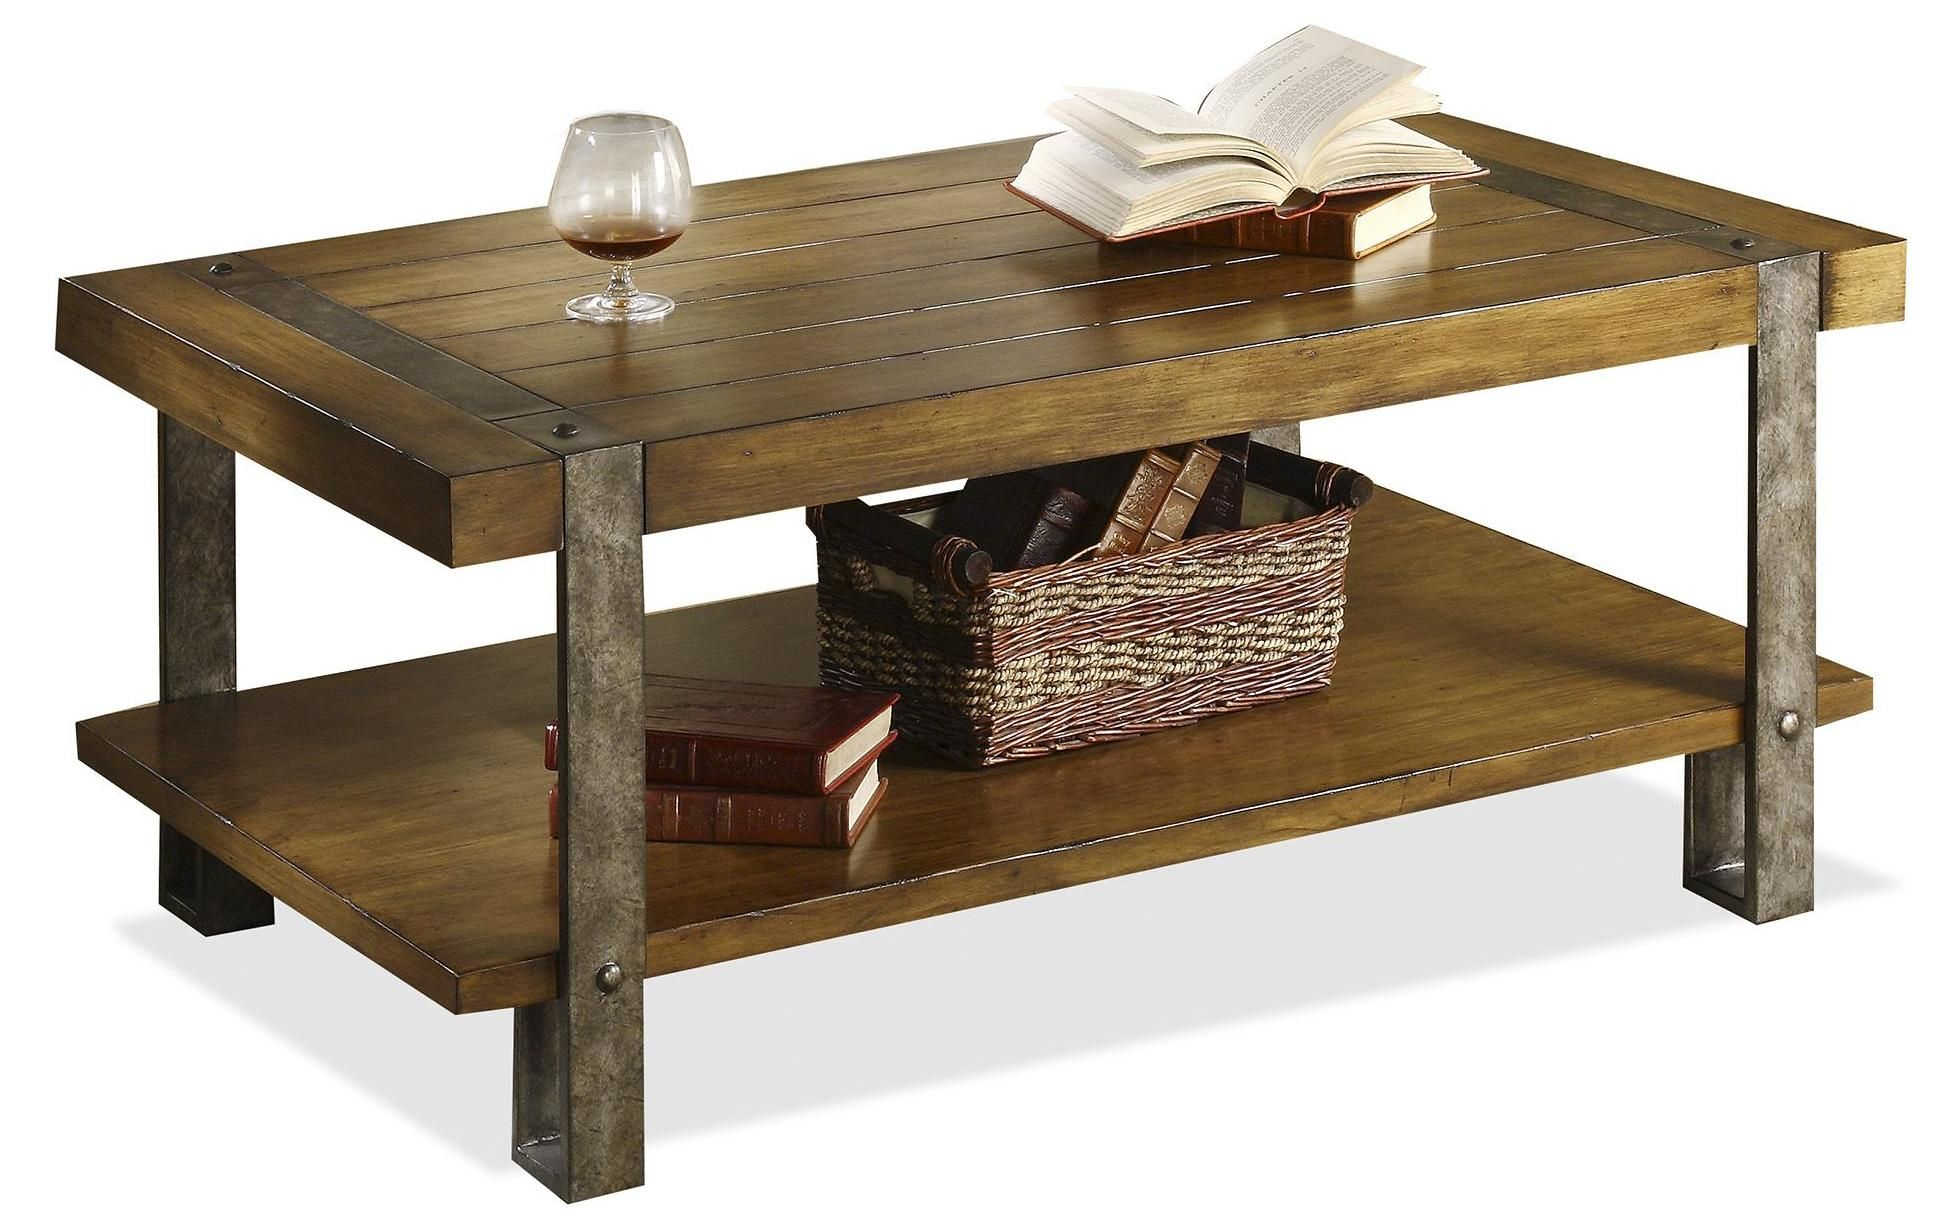 Perfect Sierra Sierra Coffee Table By Riverside Furniture   A Striking Combination  Of Aged Metal And Wood